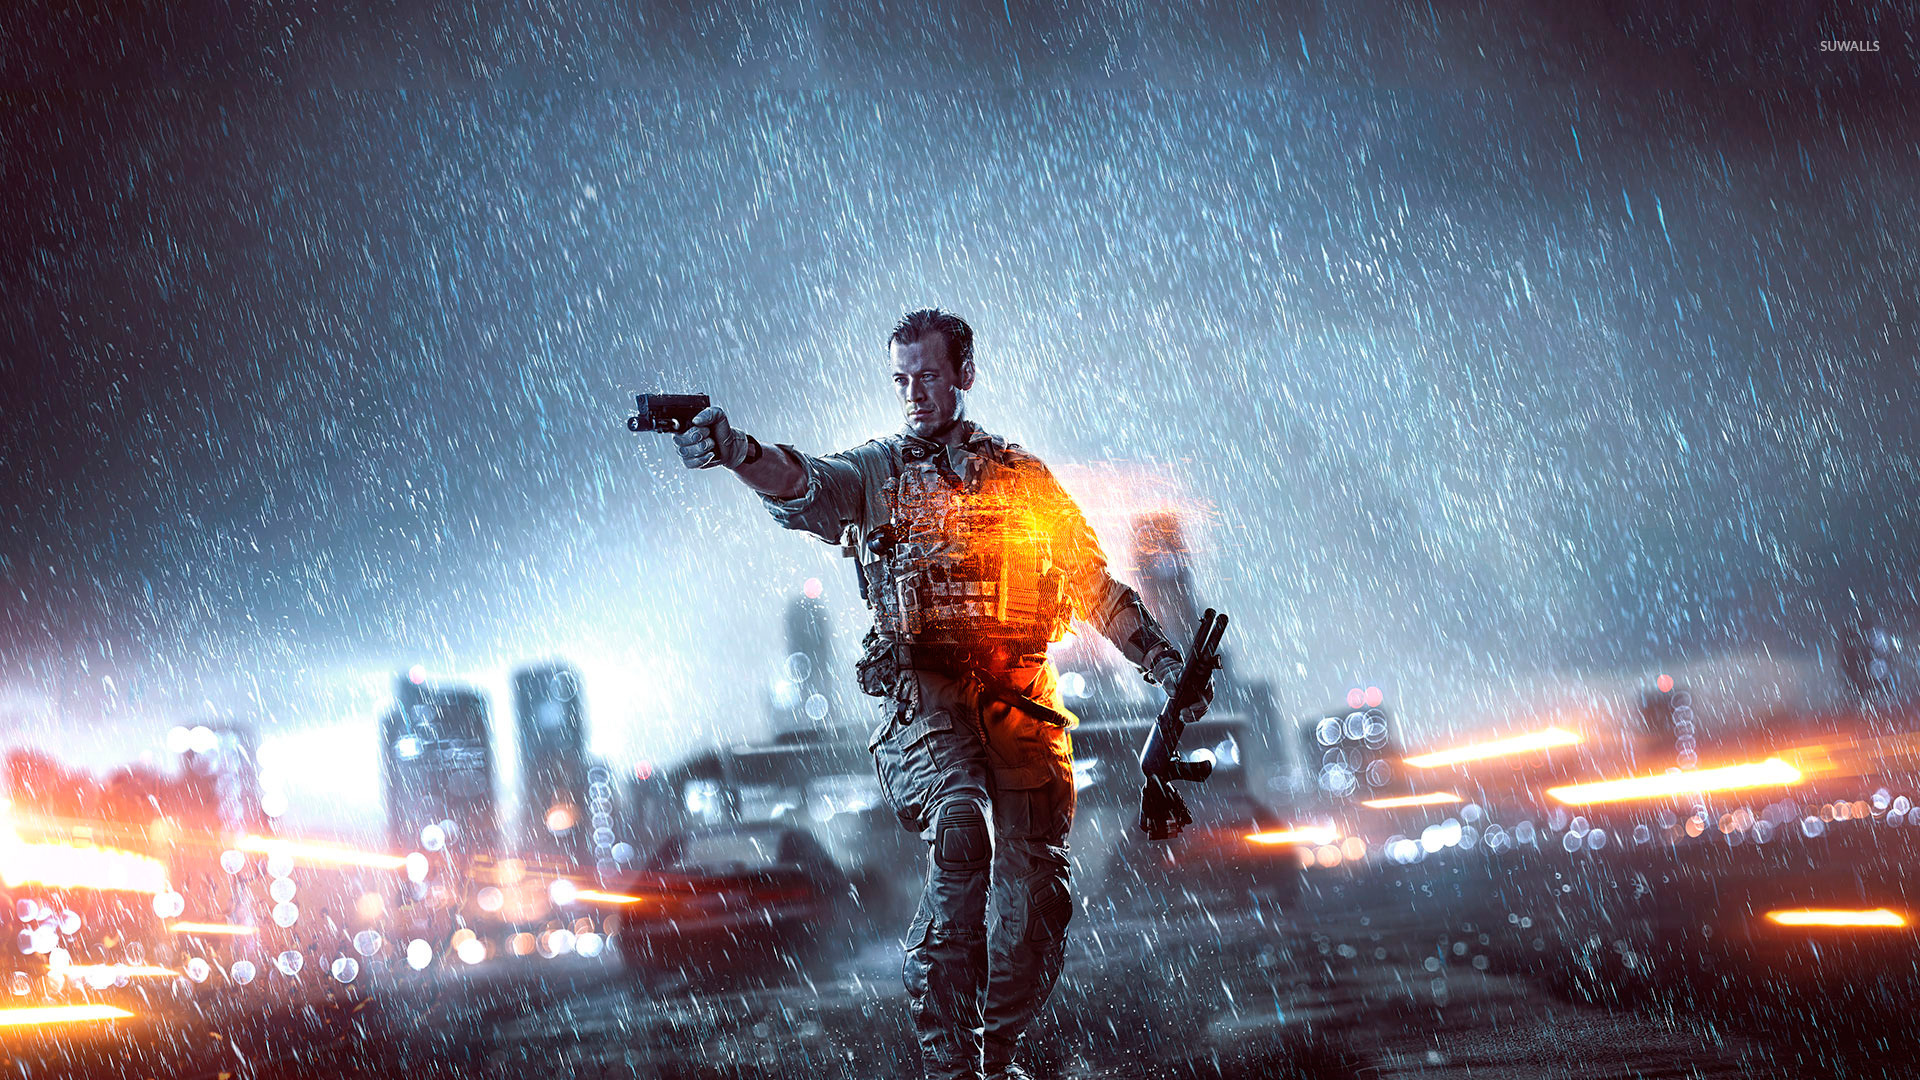 Battlefield 4 Campaign Details Revealed: Character Renders ...